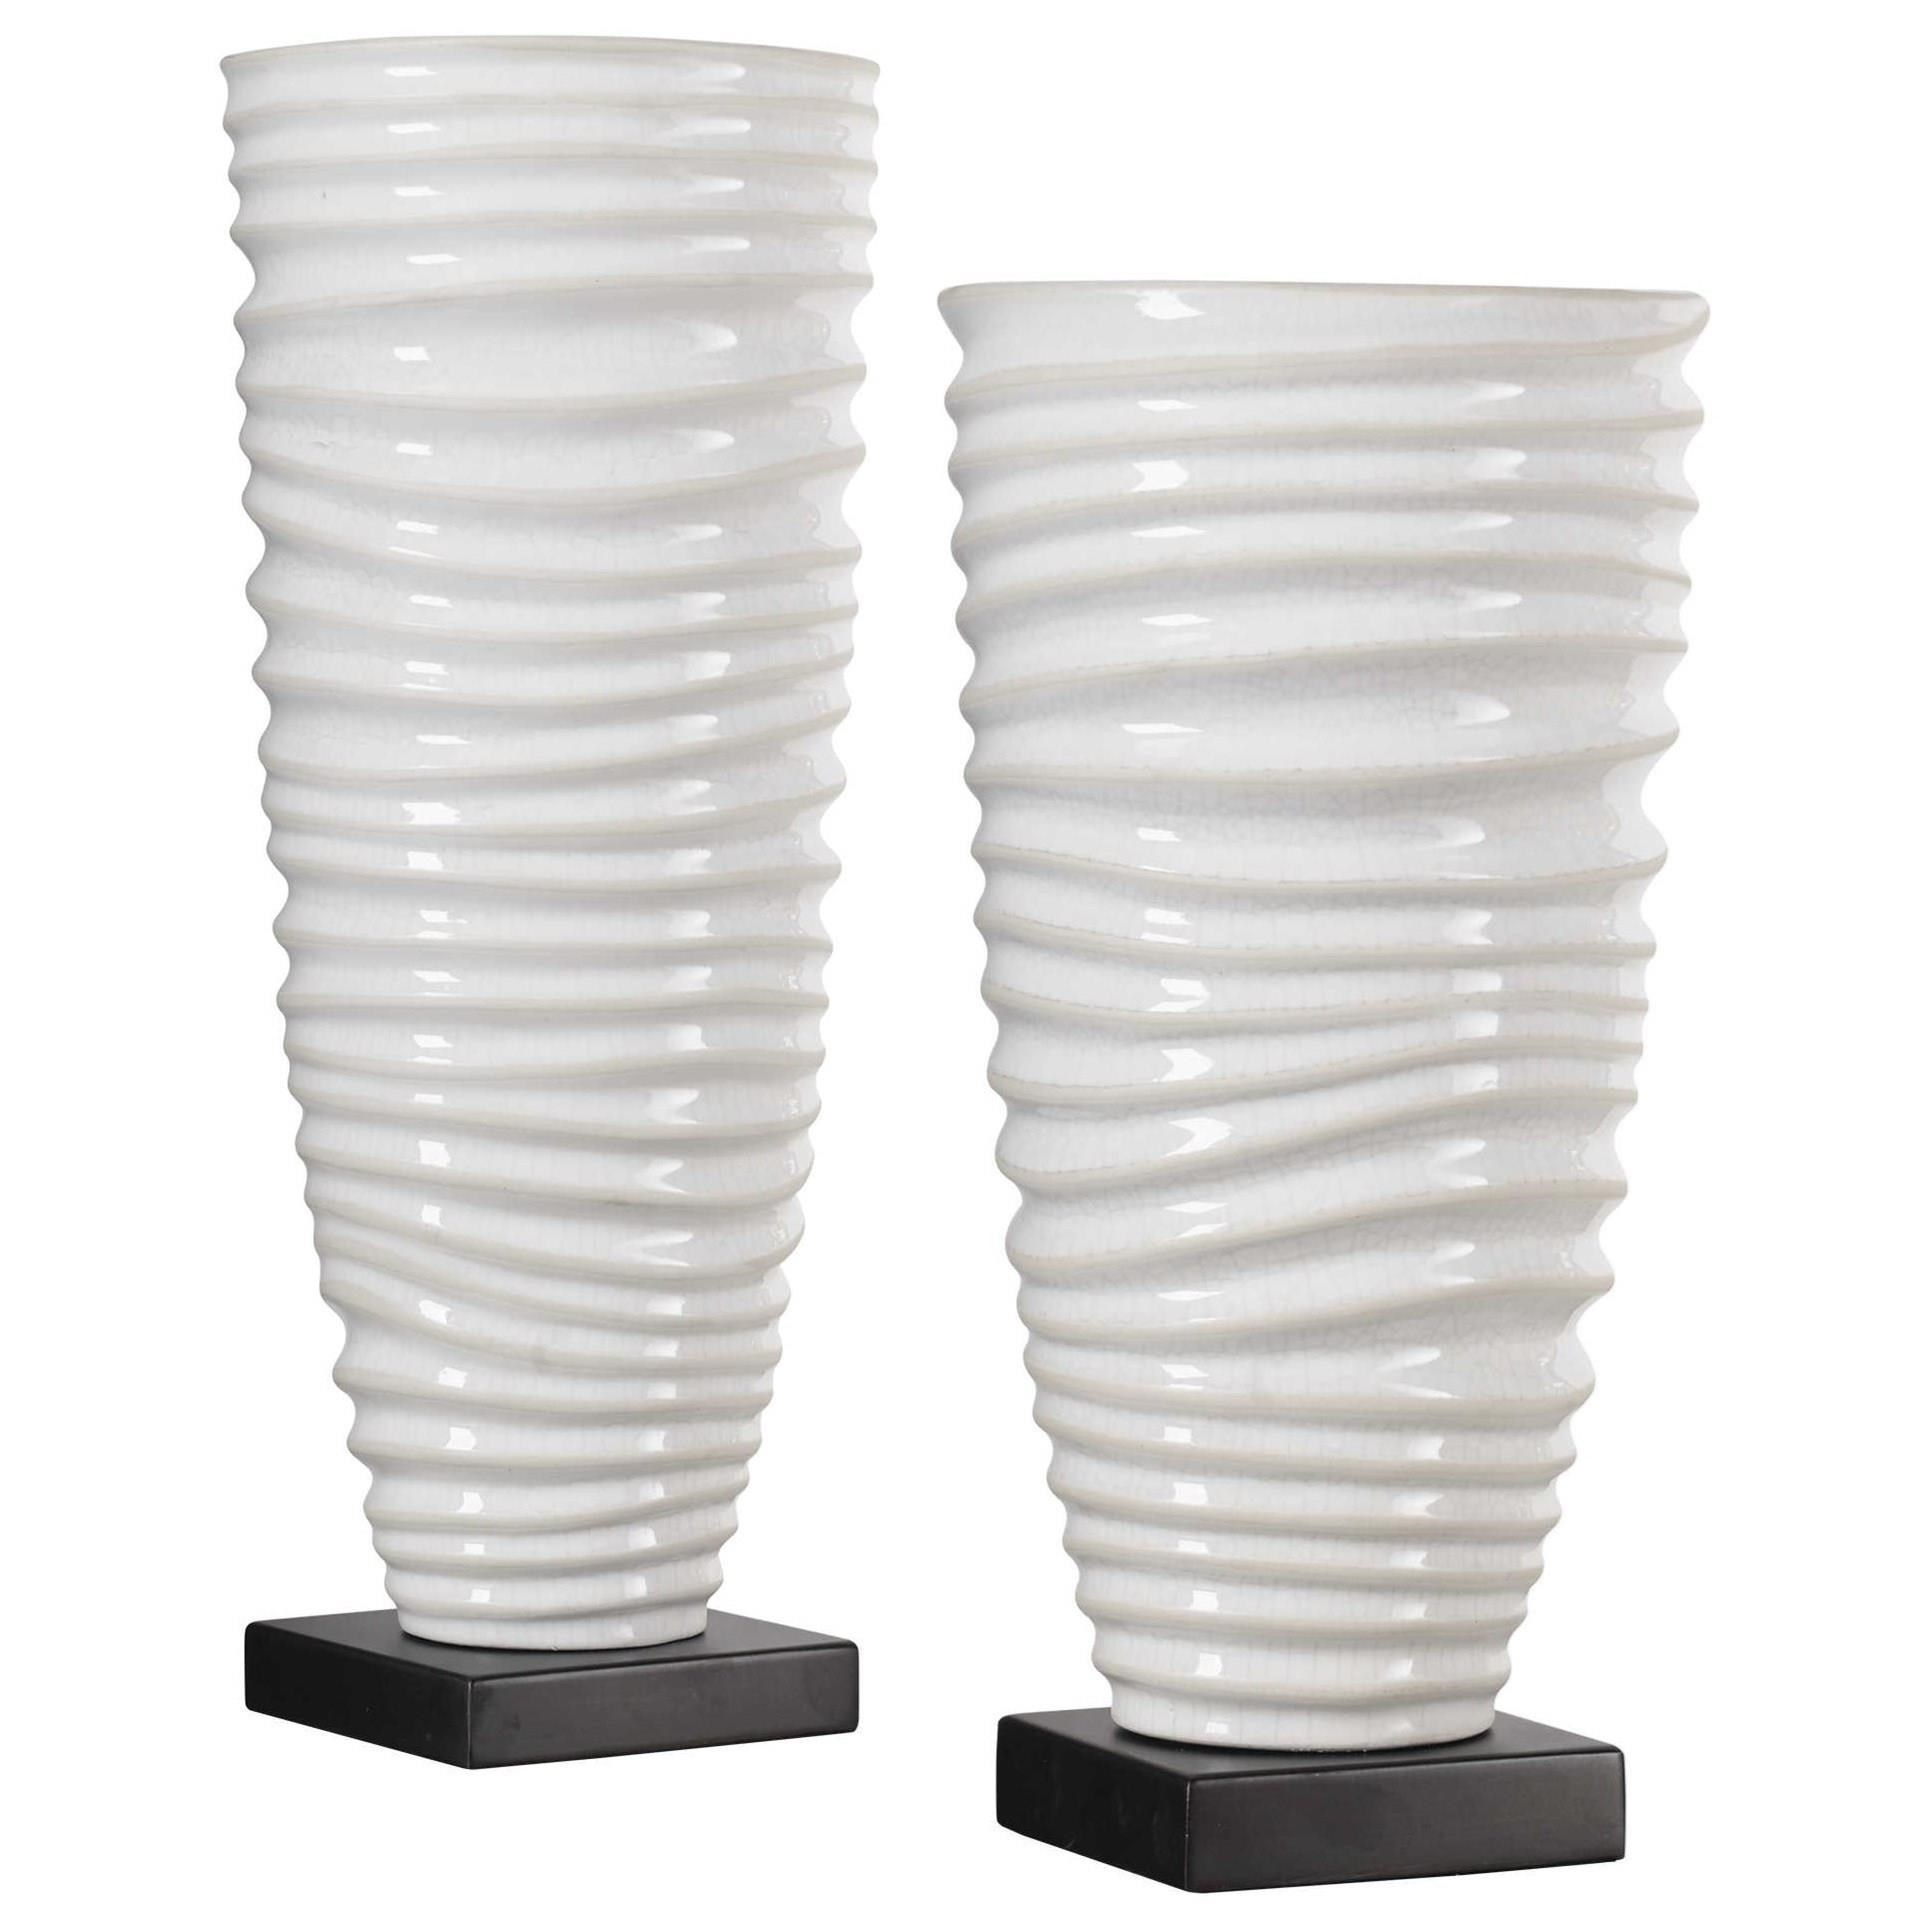 Accessories - Vases and Urns Kiera Aged White Vases, S/2 by Uttermost at Suburban Furniture